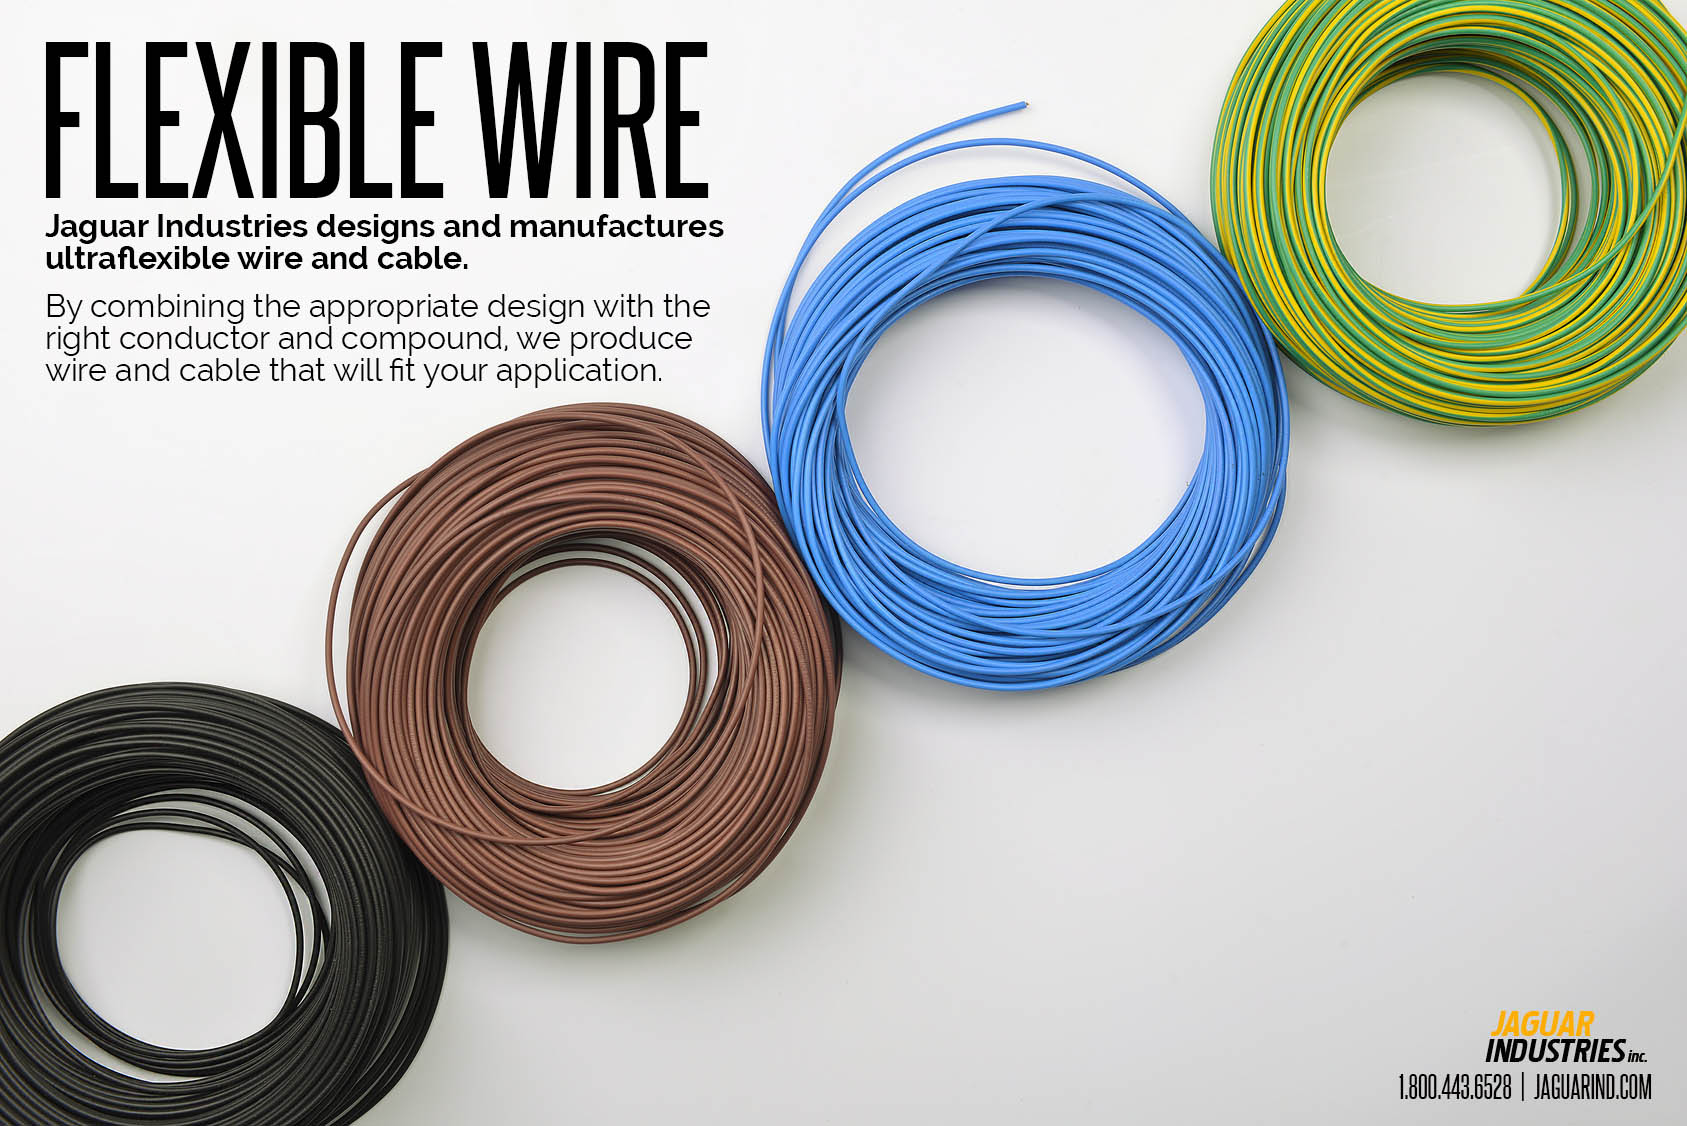 Flexible Miniature Wire - Jaguar Industries